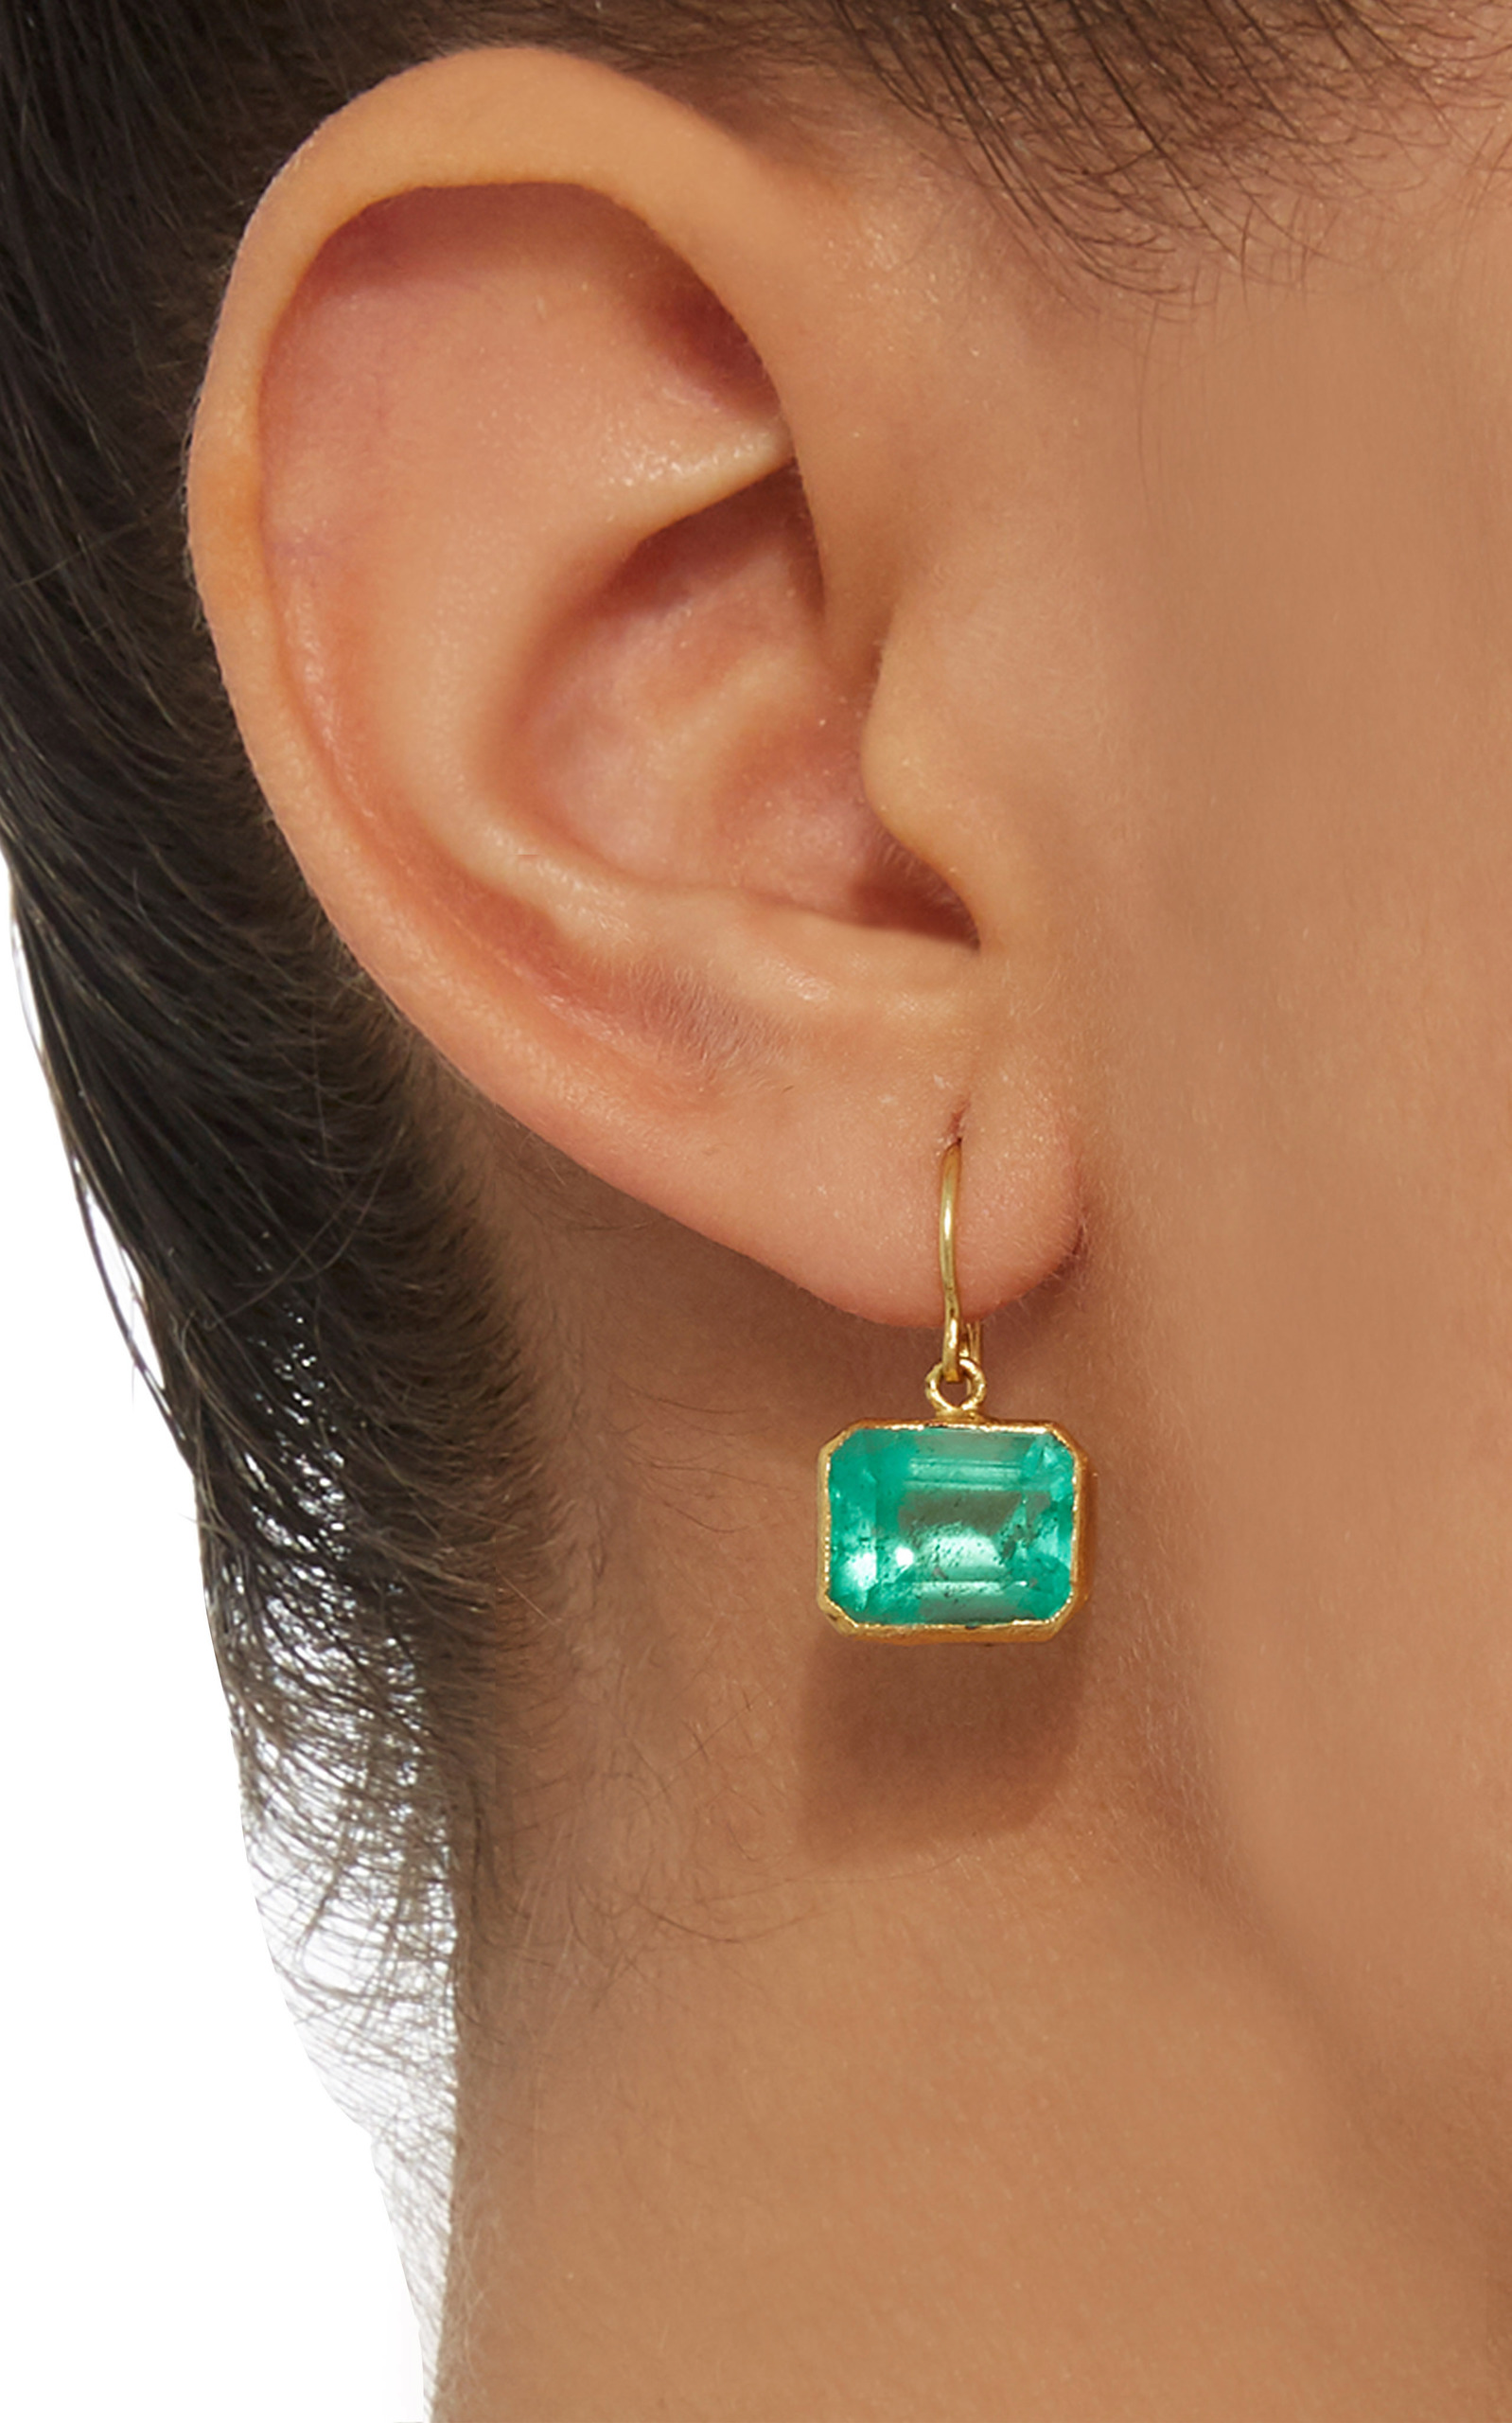 moda one single earrings by blue katz large operandi kind martin a drop paraibe loading of